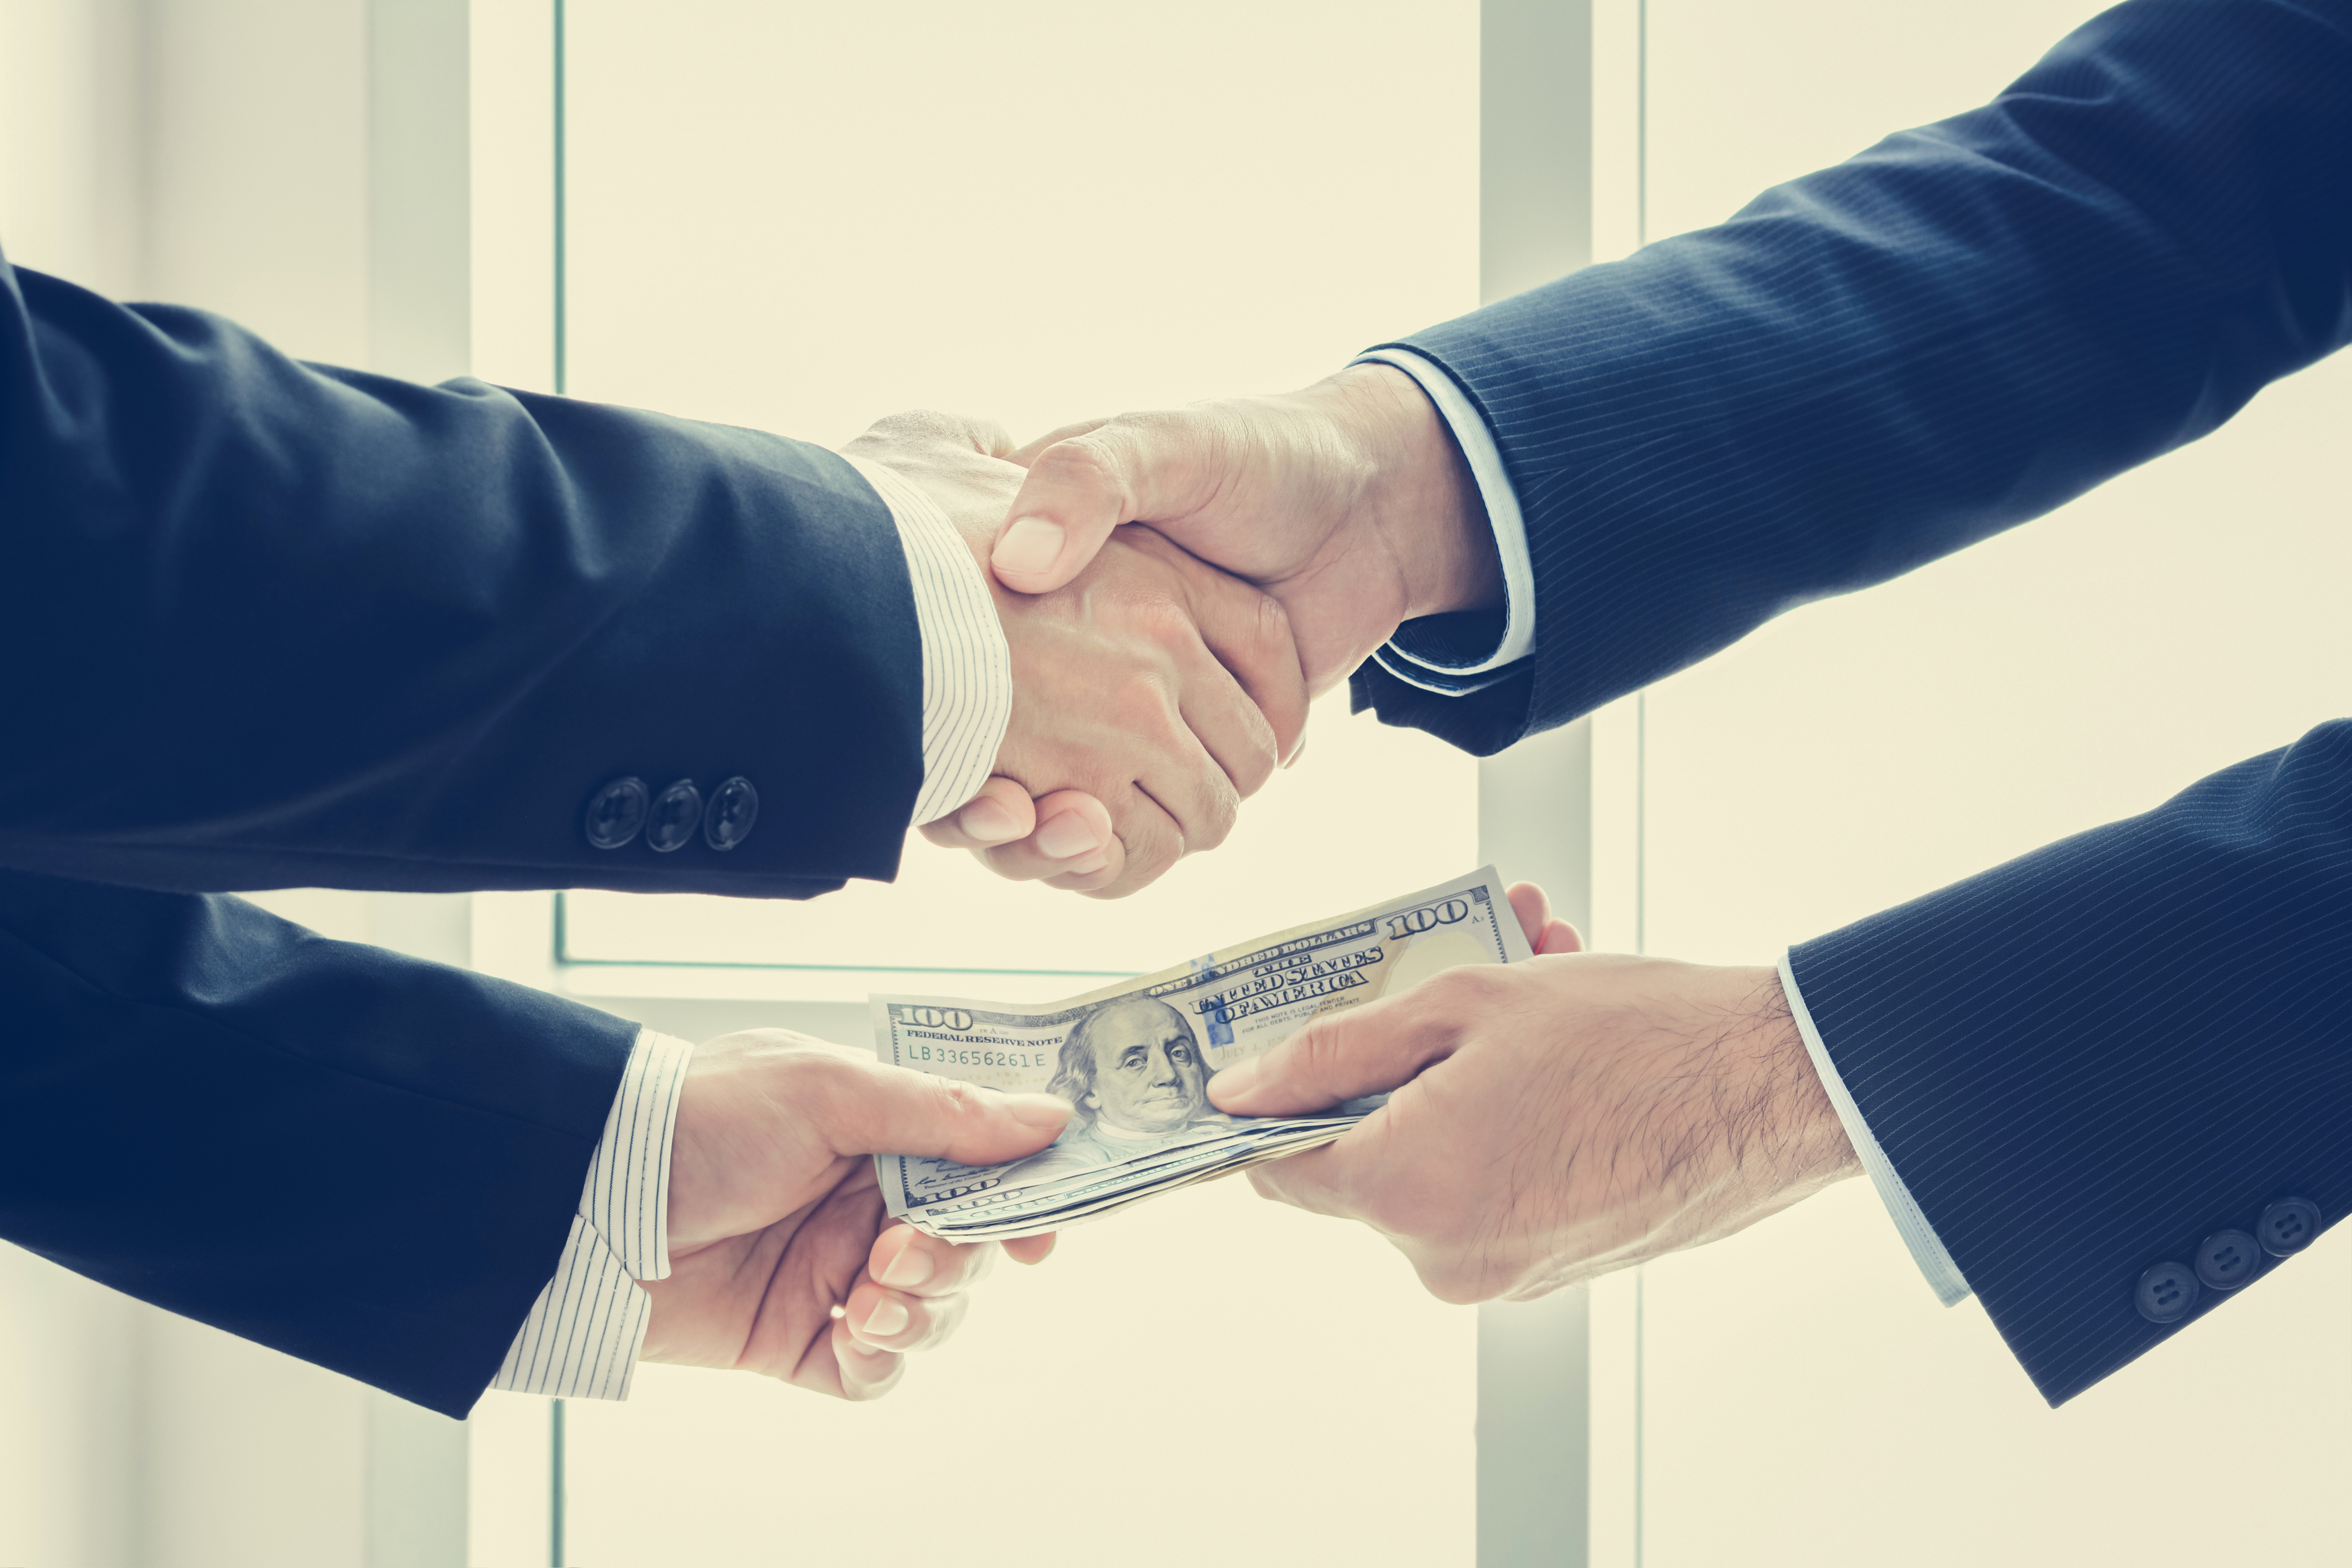 Two hands shaking while exchanging a stack of money with the other hands